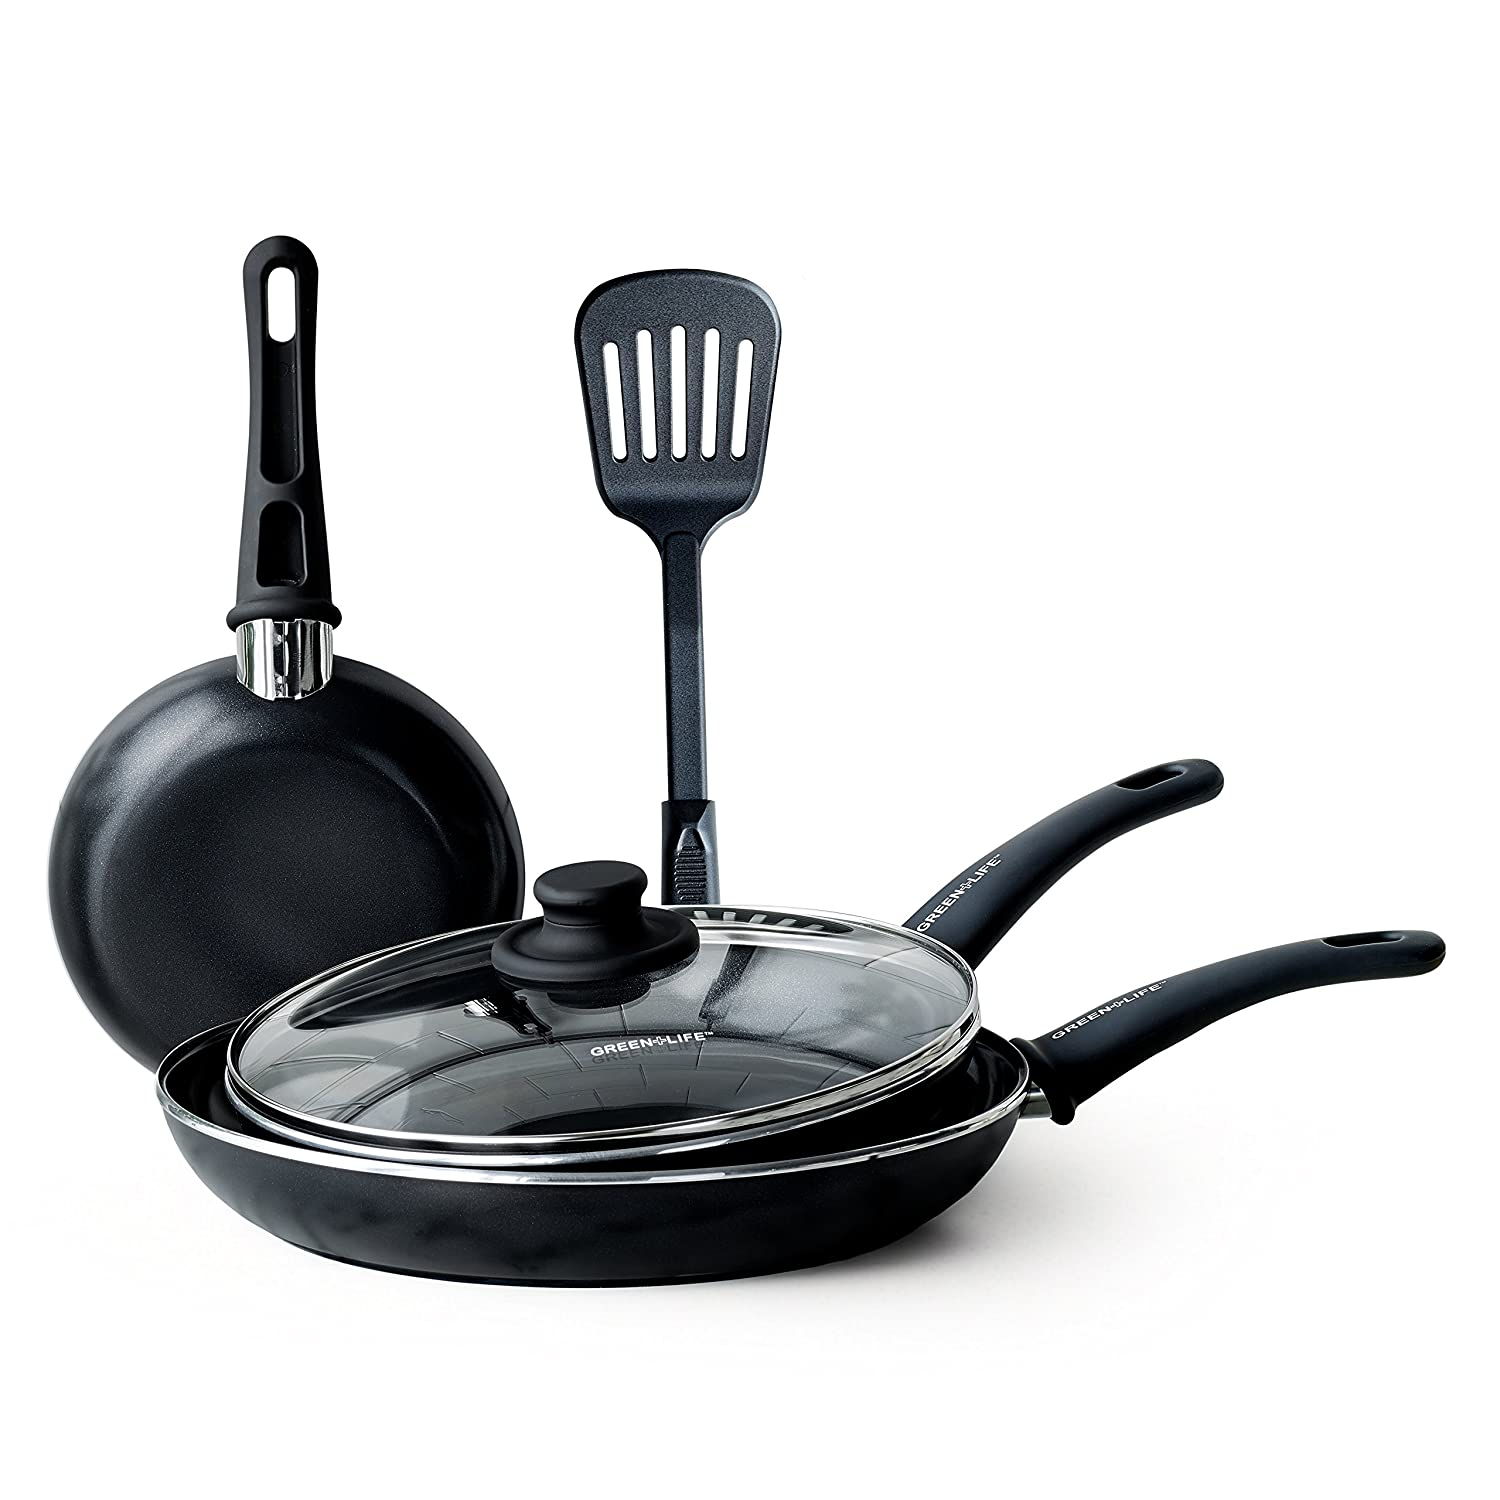 GreenLife CC001577-001 Diamond Cookware Set, 5-Piece, Black